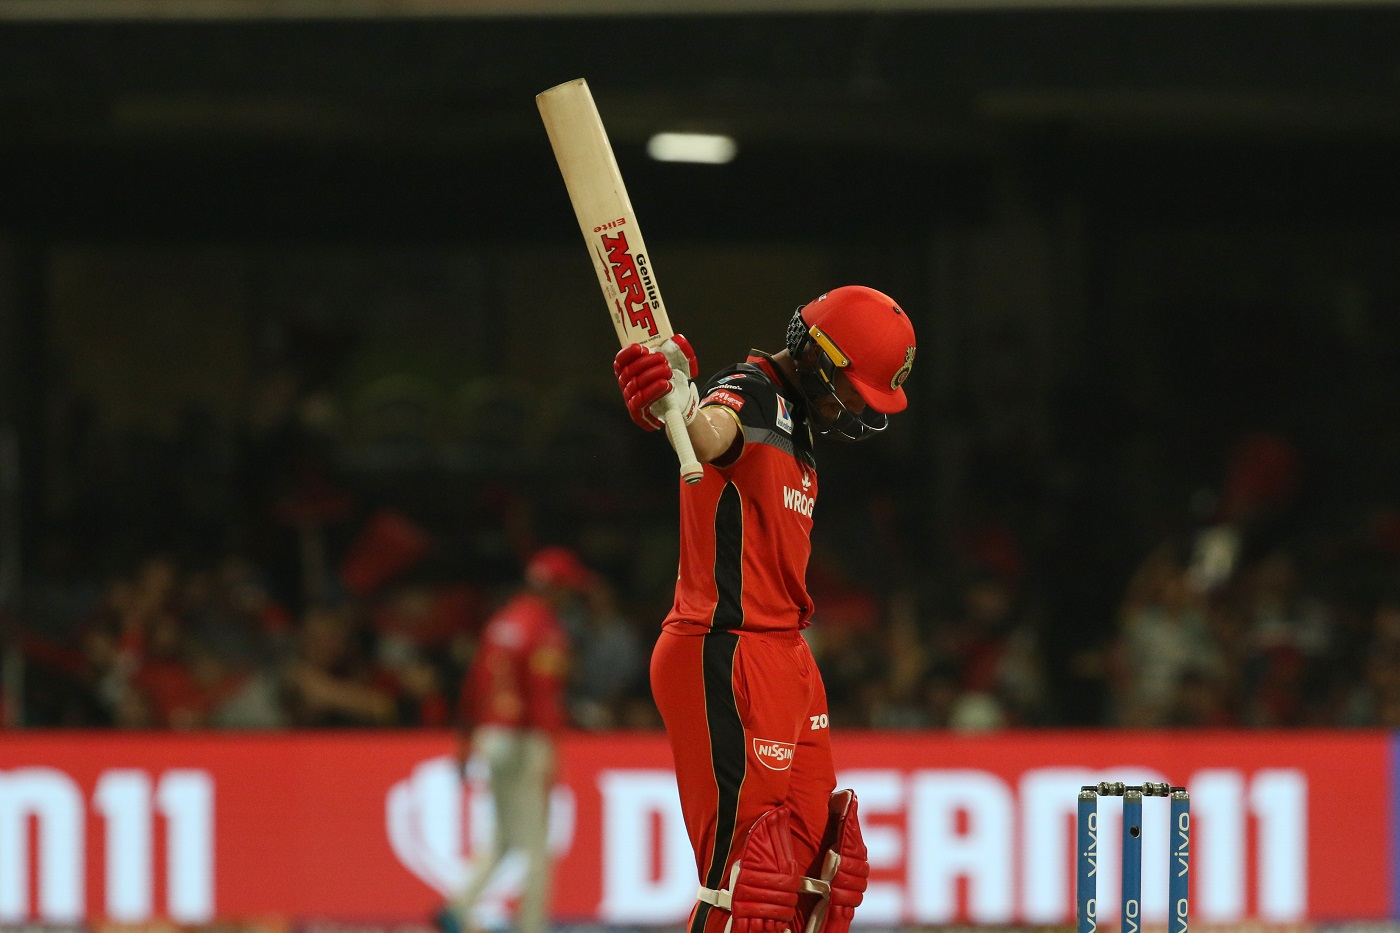 IPL 2019: Match 42, RCB vs KXIP – Twitter Reacts as Royals Challengers Bangalore Register their Third Consecutive Victory 2